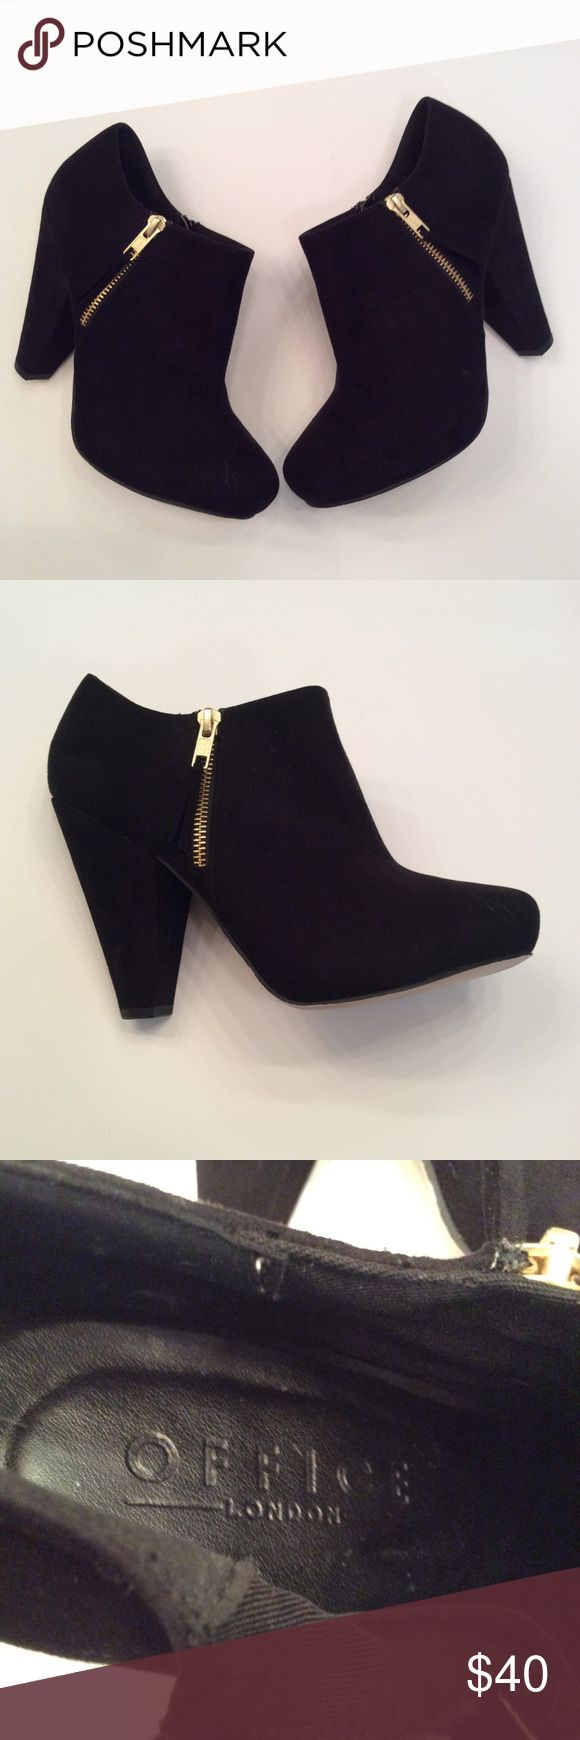 Office London black suede side zipper ankle boots Office London black suede side zipper ankle boots, he'll is 4 1/2 inches, these were purchased in London size 40 EUC questions??? Please ask Office London Shoes Ankle Boots & Booties